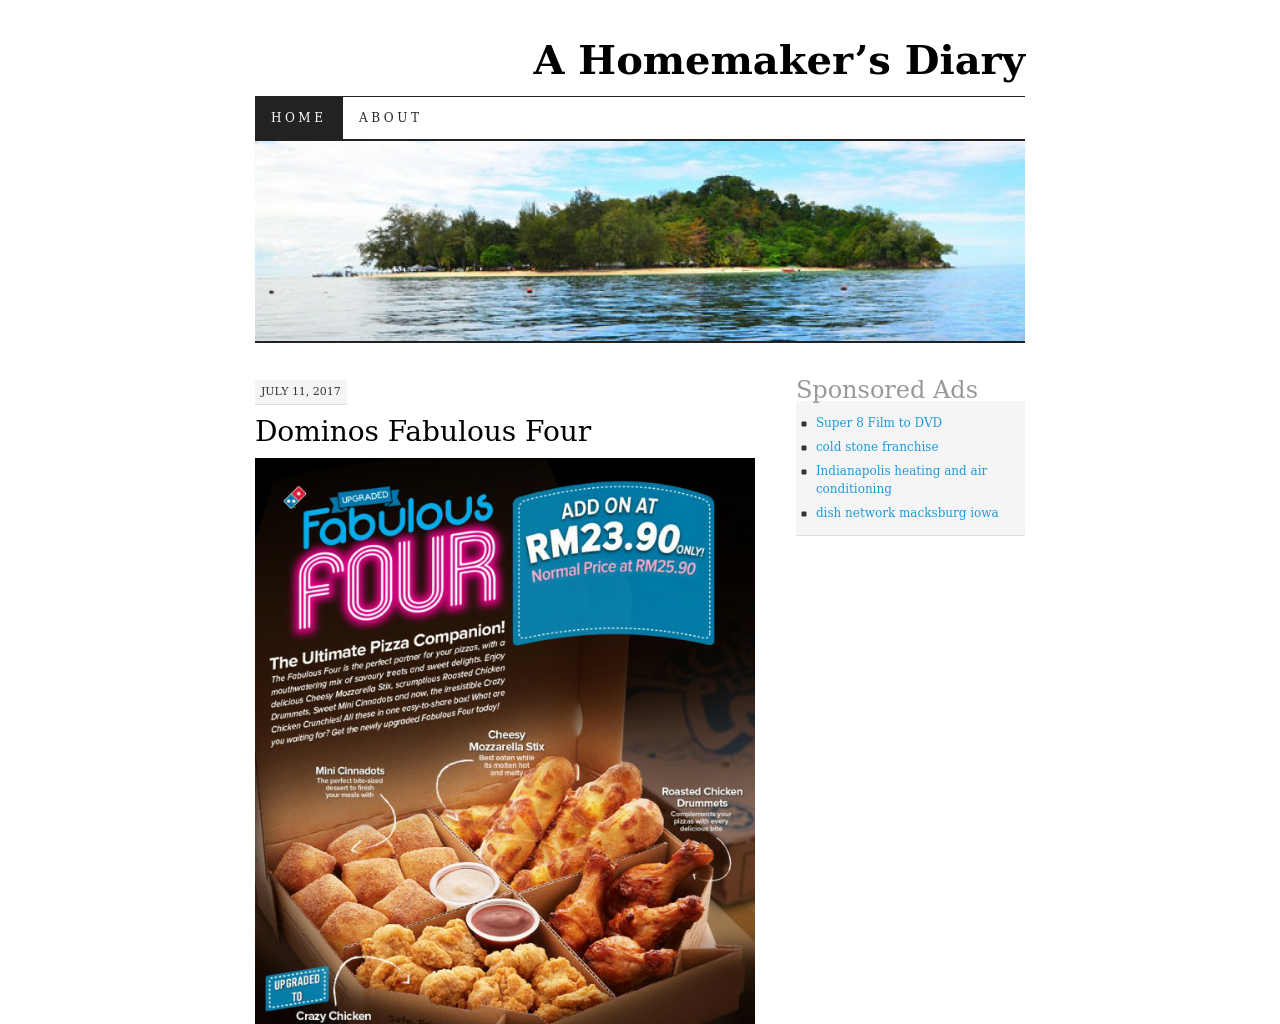 A-Homemaker's-Diary-Advertising-Reviews-Pricing